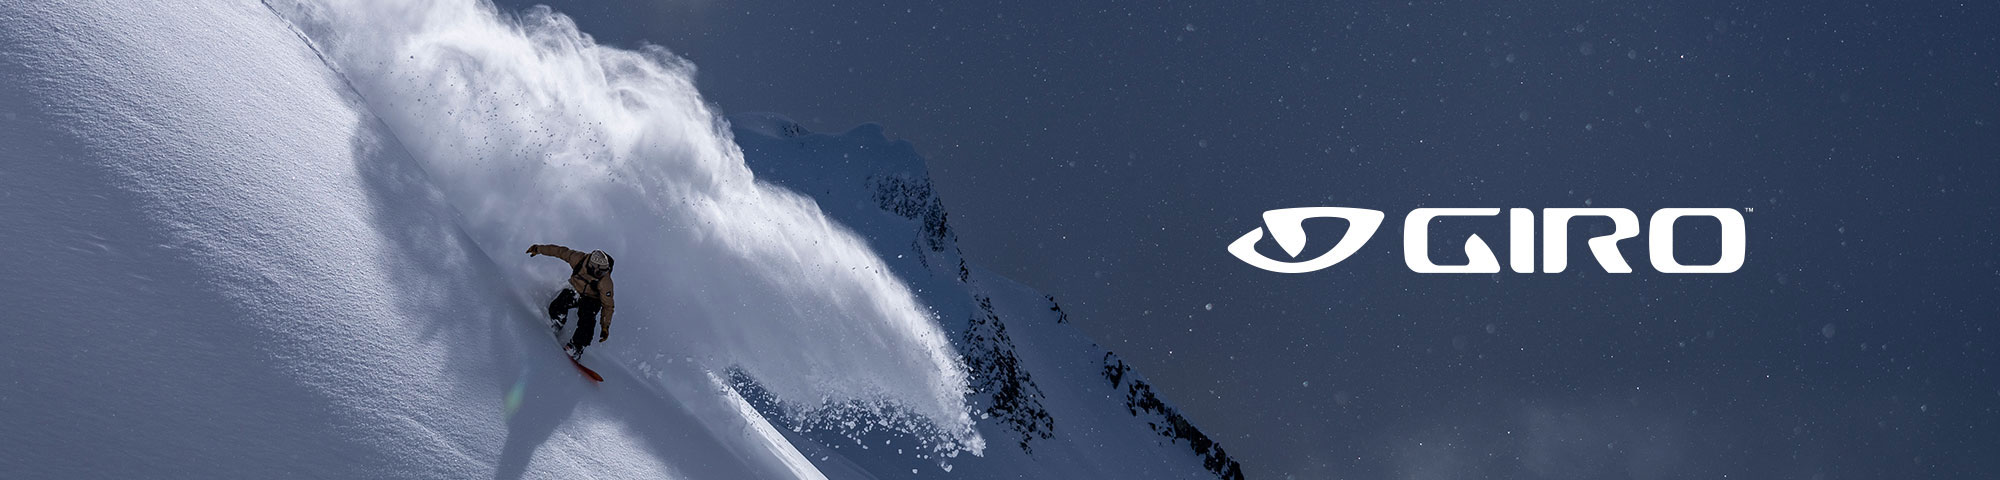 Giro Ella Prescription Ski Goggles